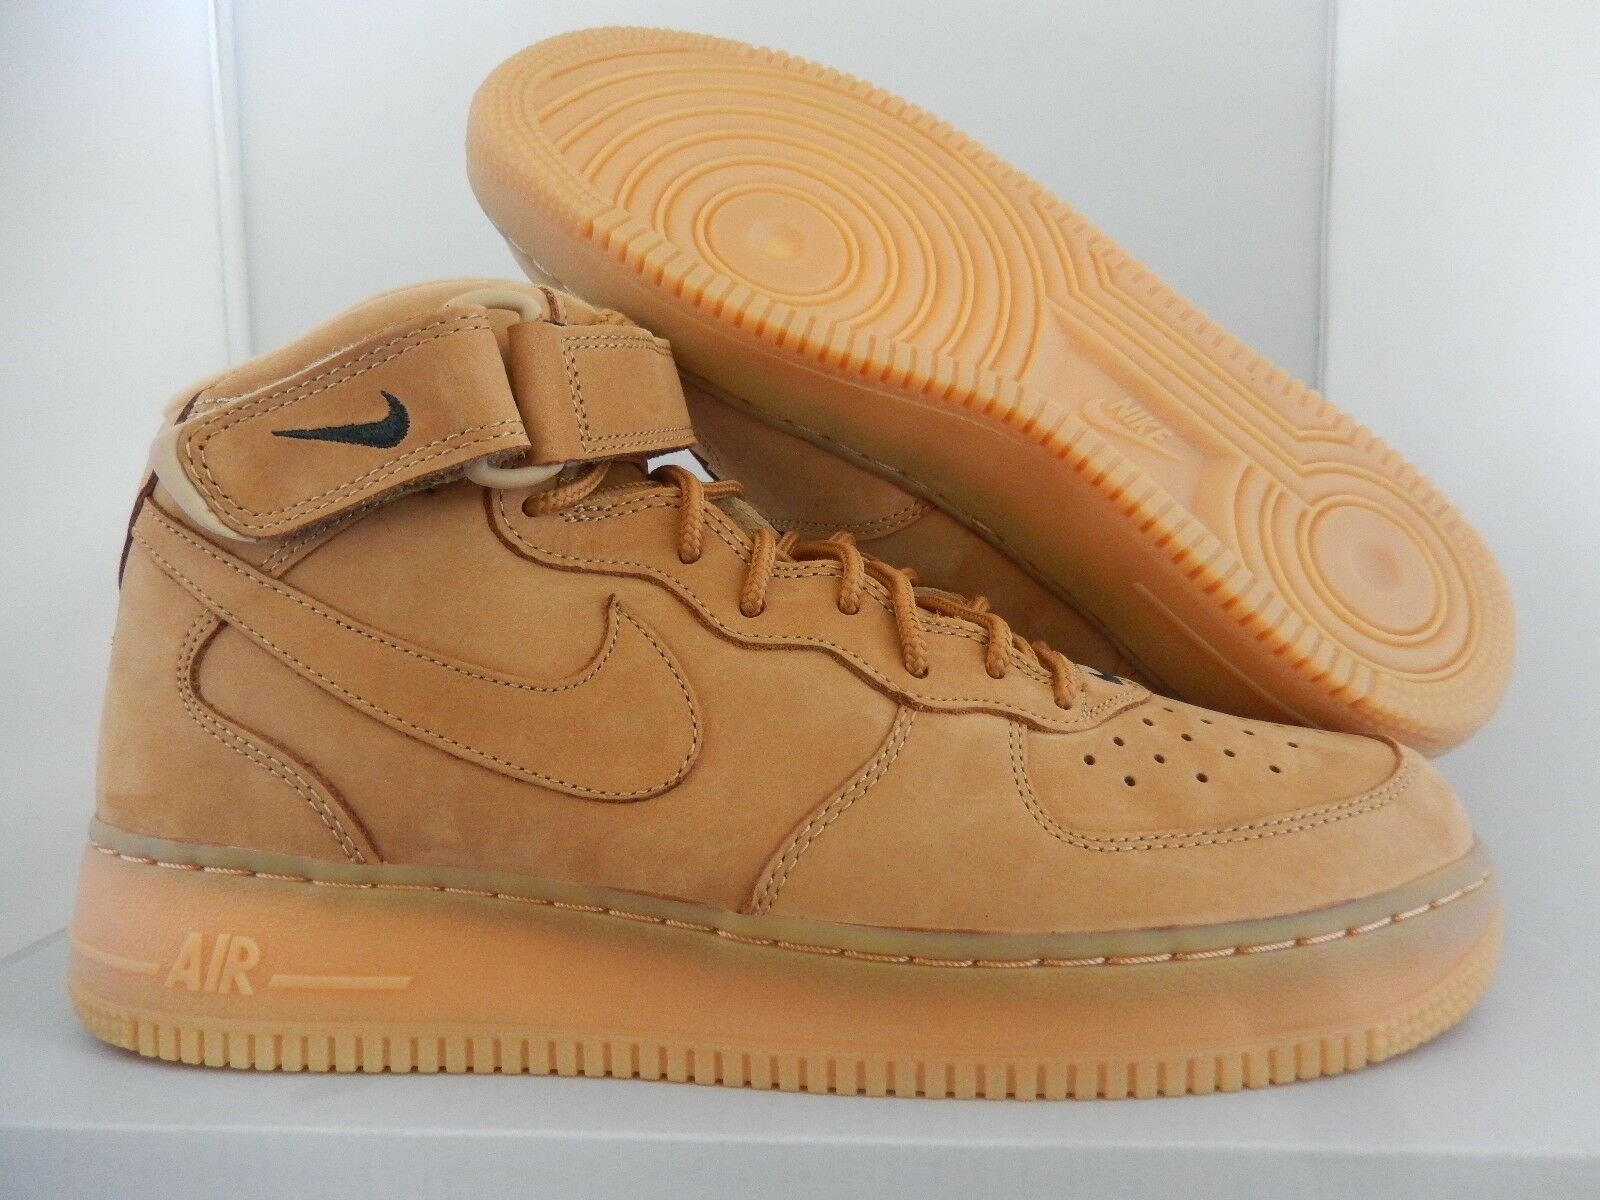 NIKE AIR FORCE 1 MID 07 PRM PREMIUM QS FLAX-WHEAT SZ 8.5 RARE  [715889-200]